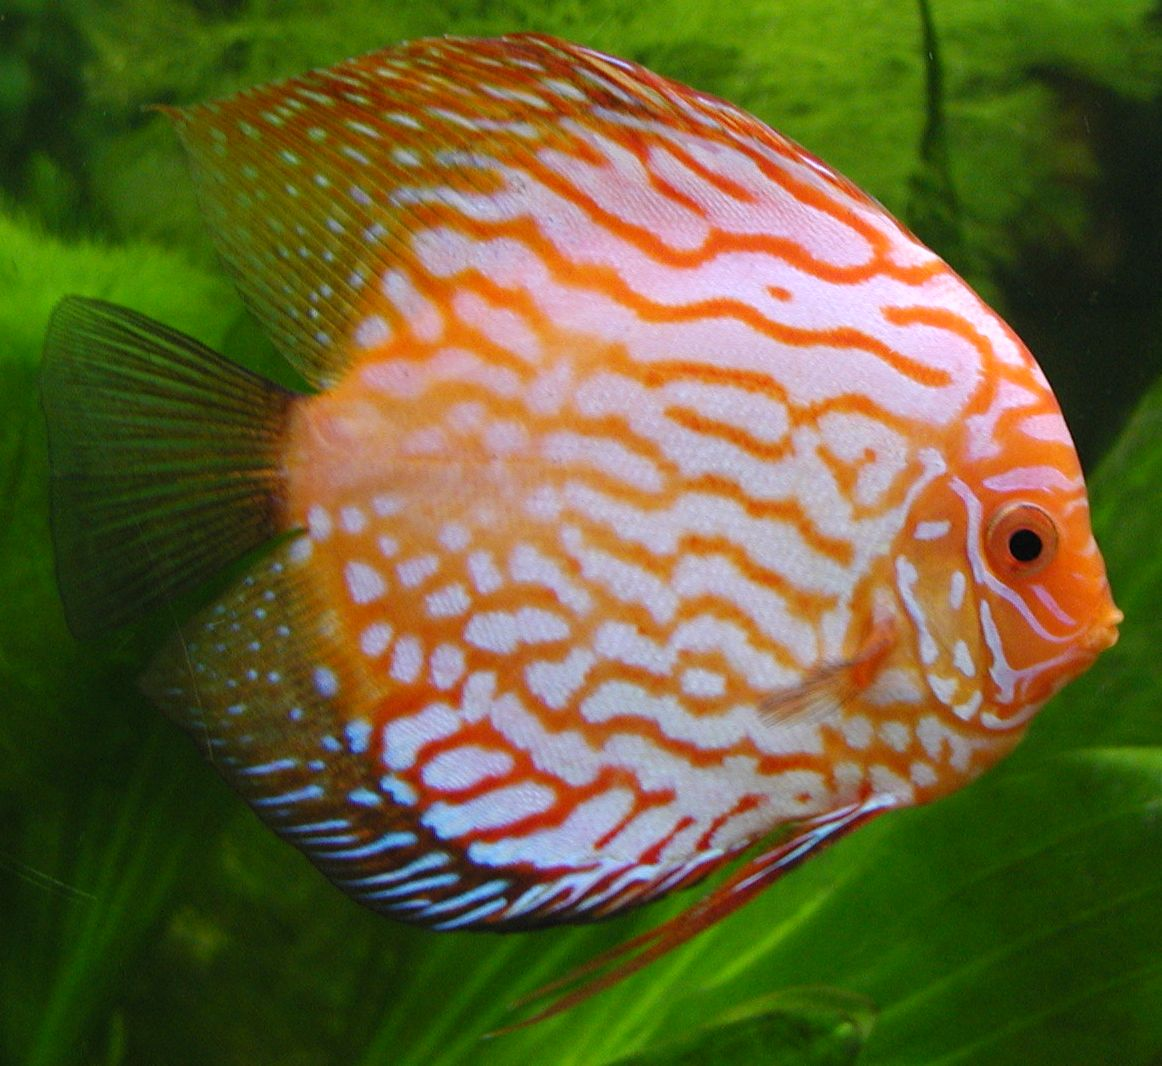 http://aquatropicalfish.files.wordpress.com/2009/02/aqua-tropical-fish-discus.jpg